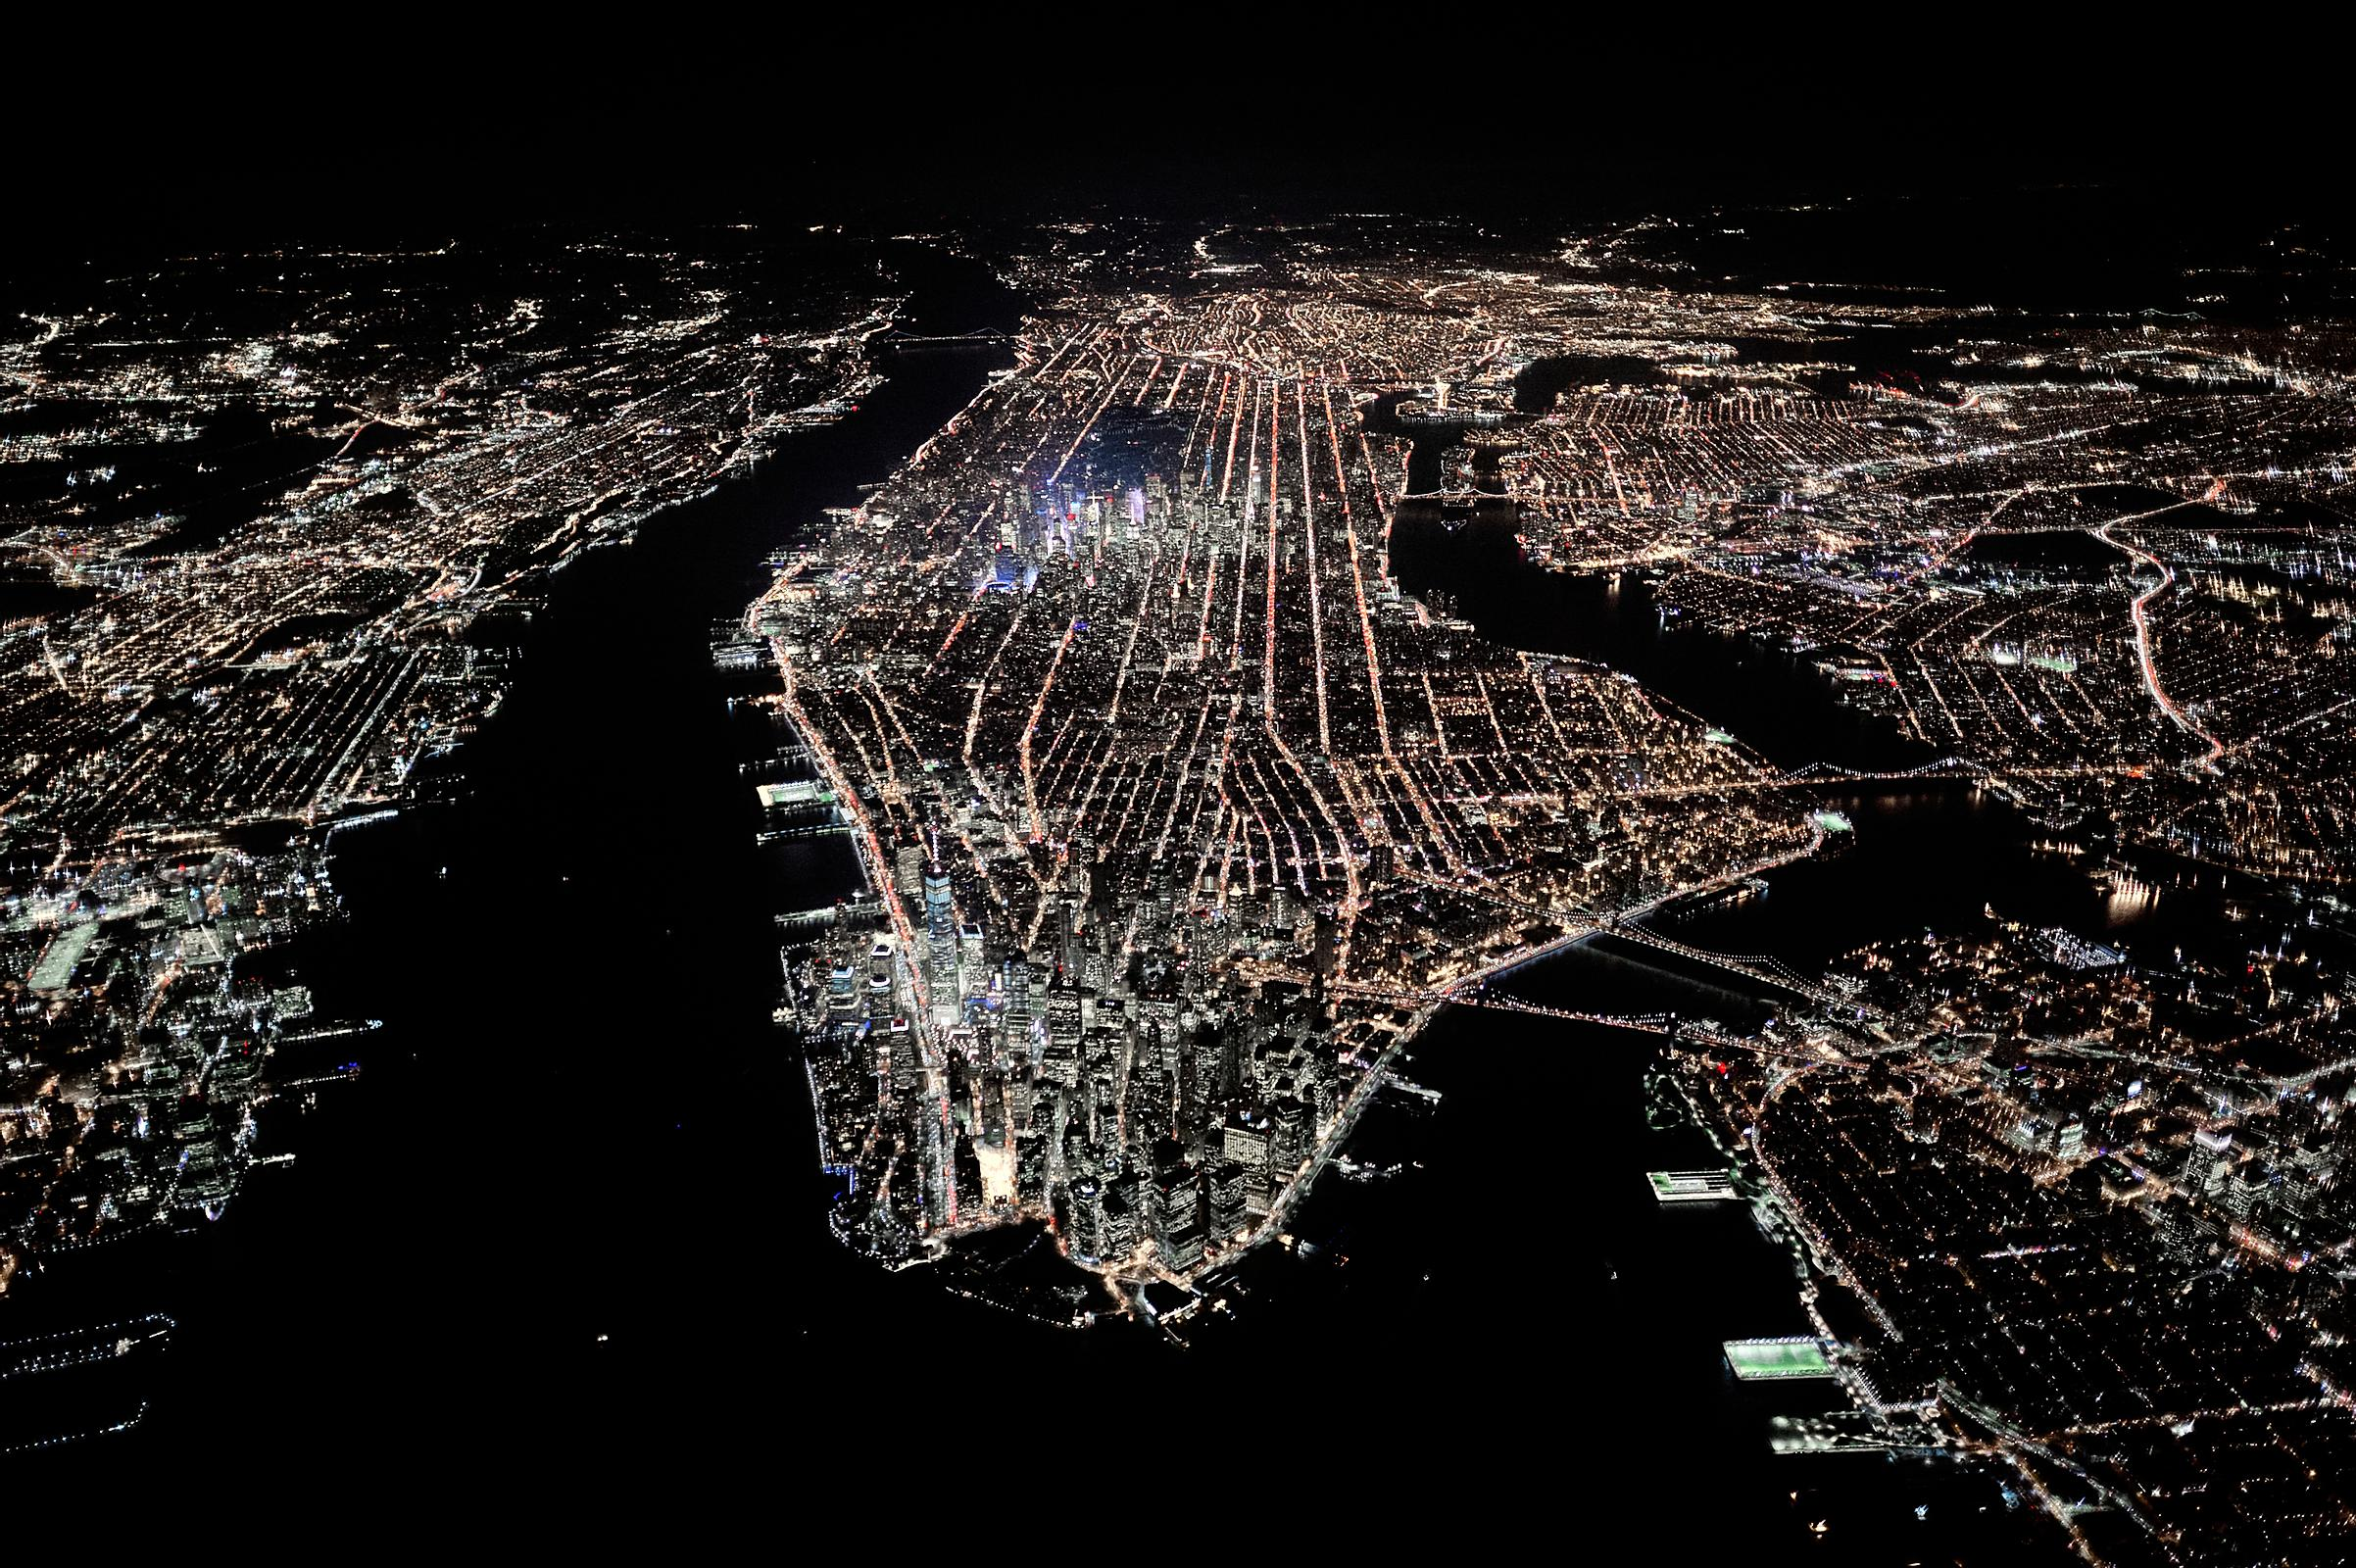 Aerial photograph of Manhattan at night